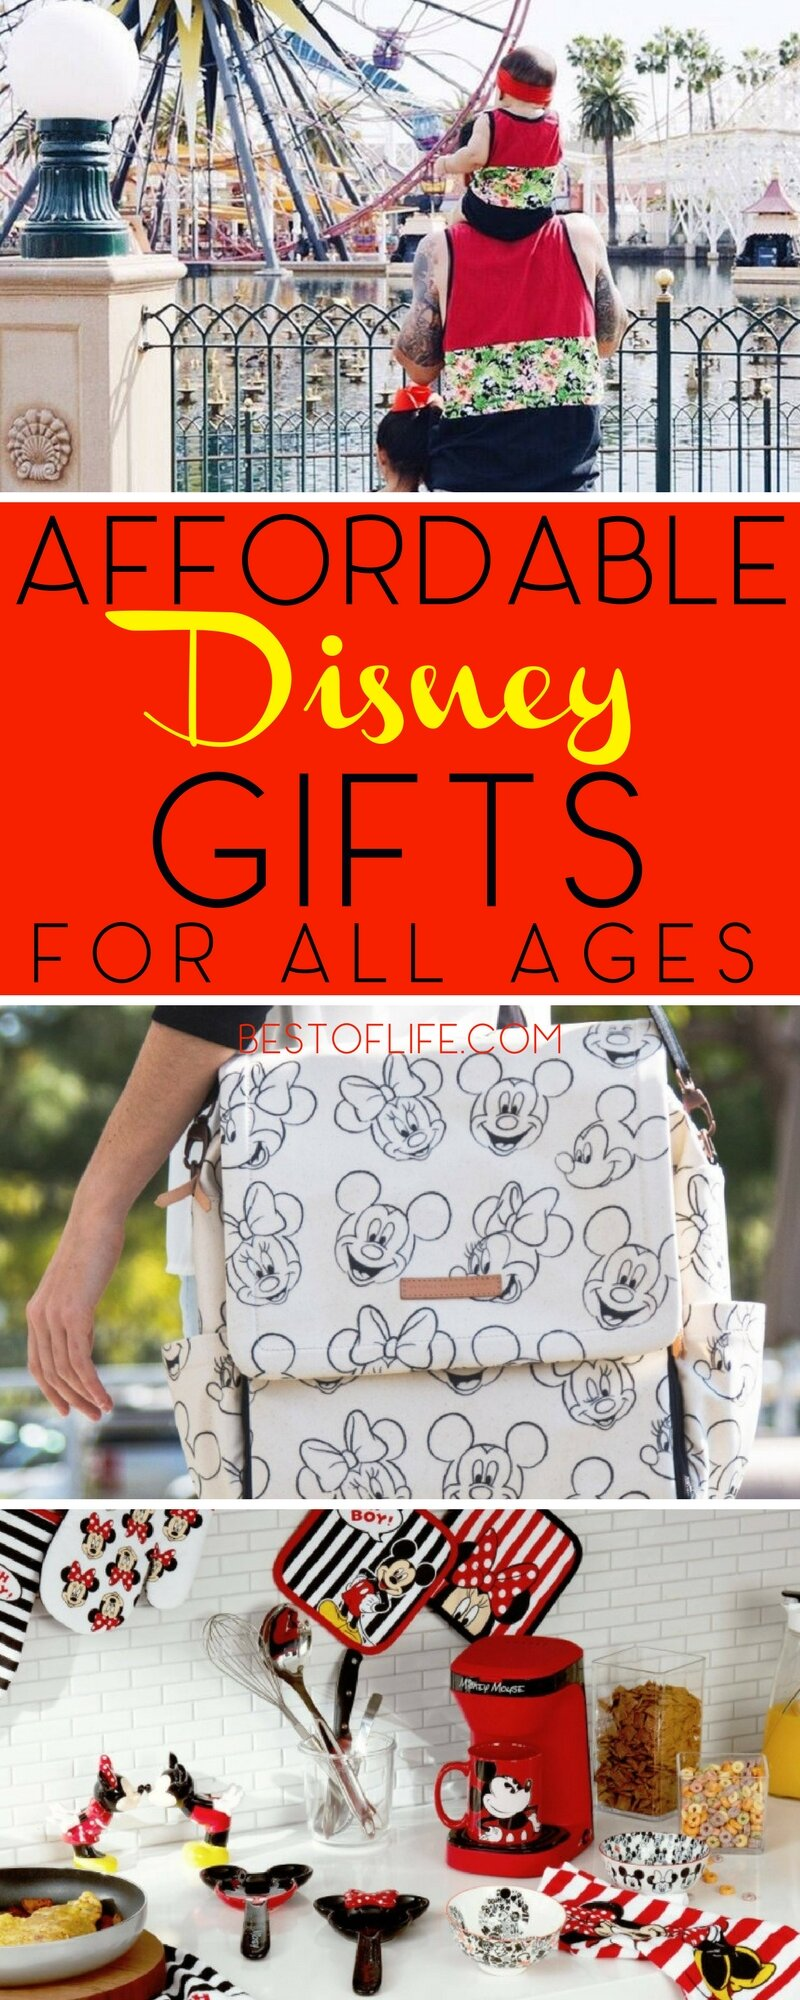 Disney Gifts For All Ages Ideas From Boxlunch The Best Of Life